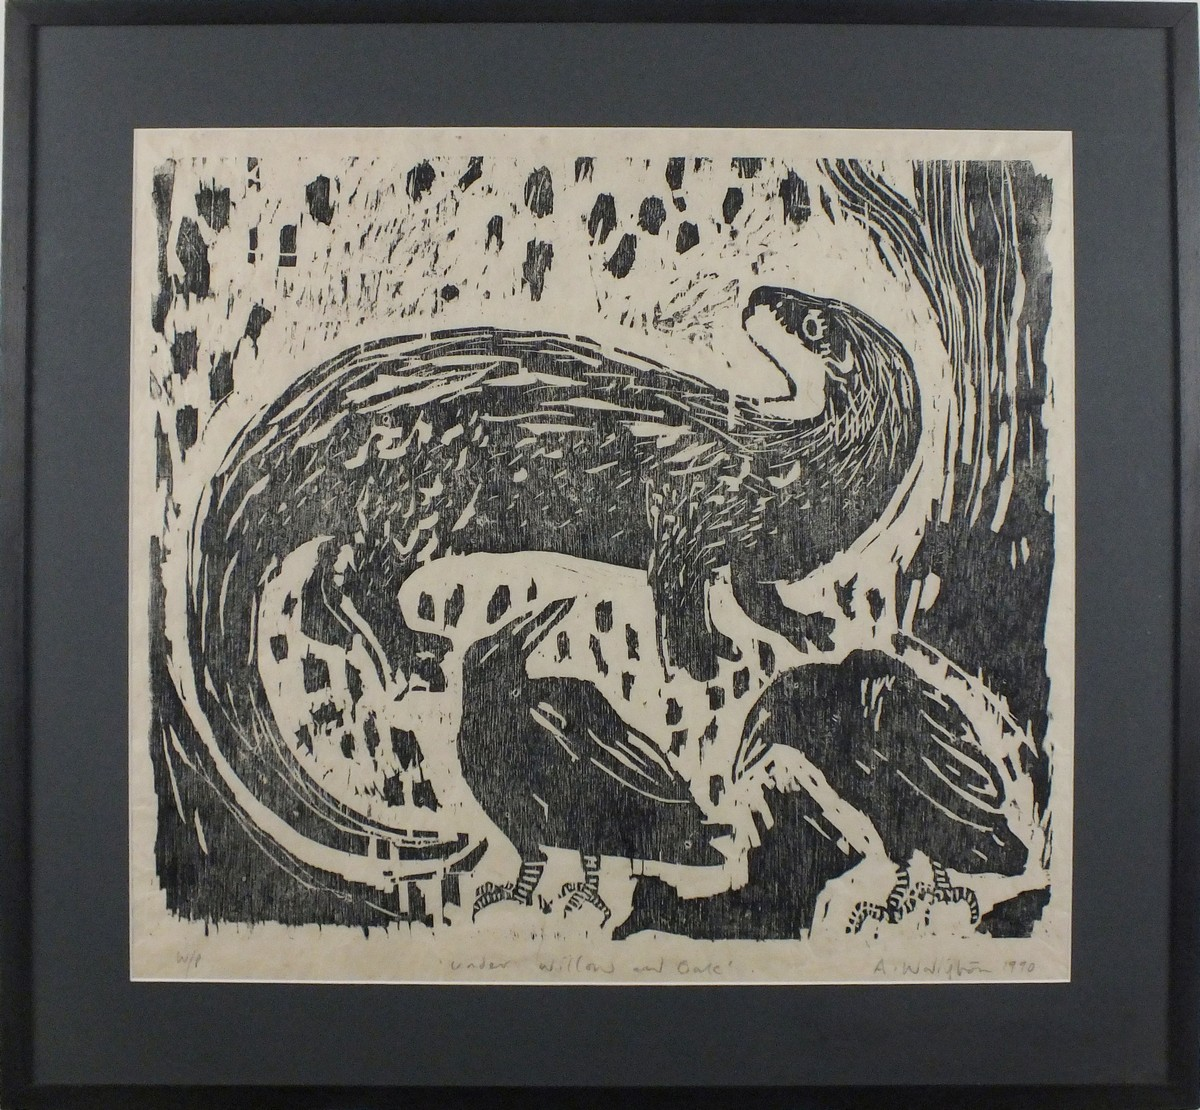 Lot 255 - Andrew WADDINGTON (British b. 1960) Under Willow and Oak, Woodcut, Signed, titled, dated 1990 and